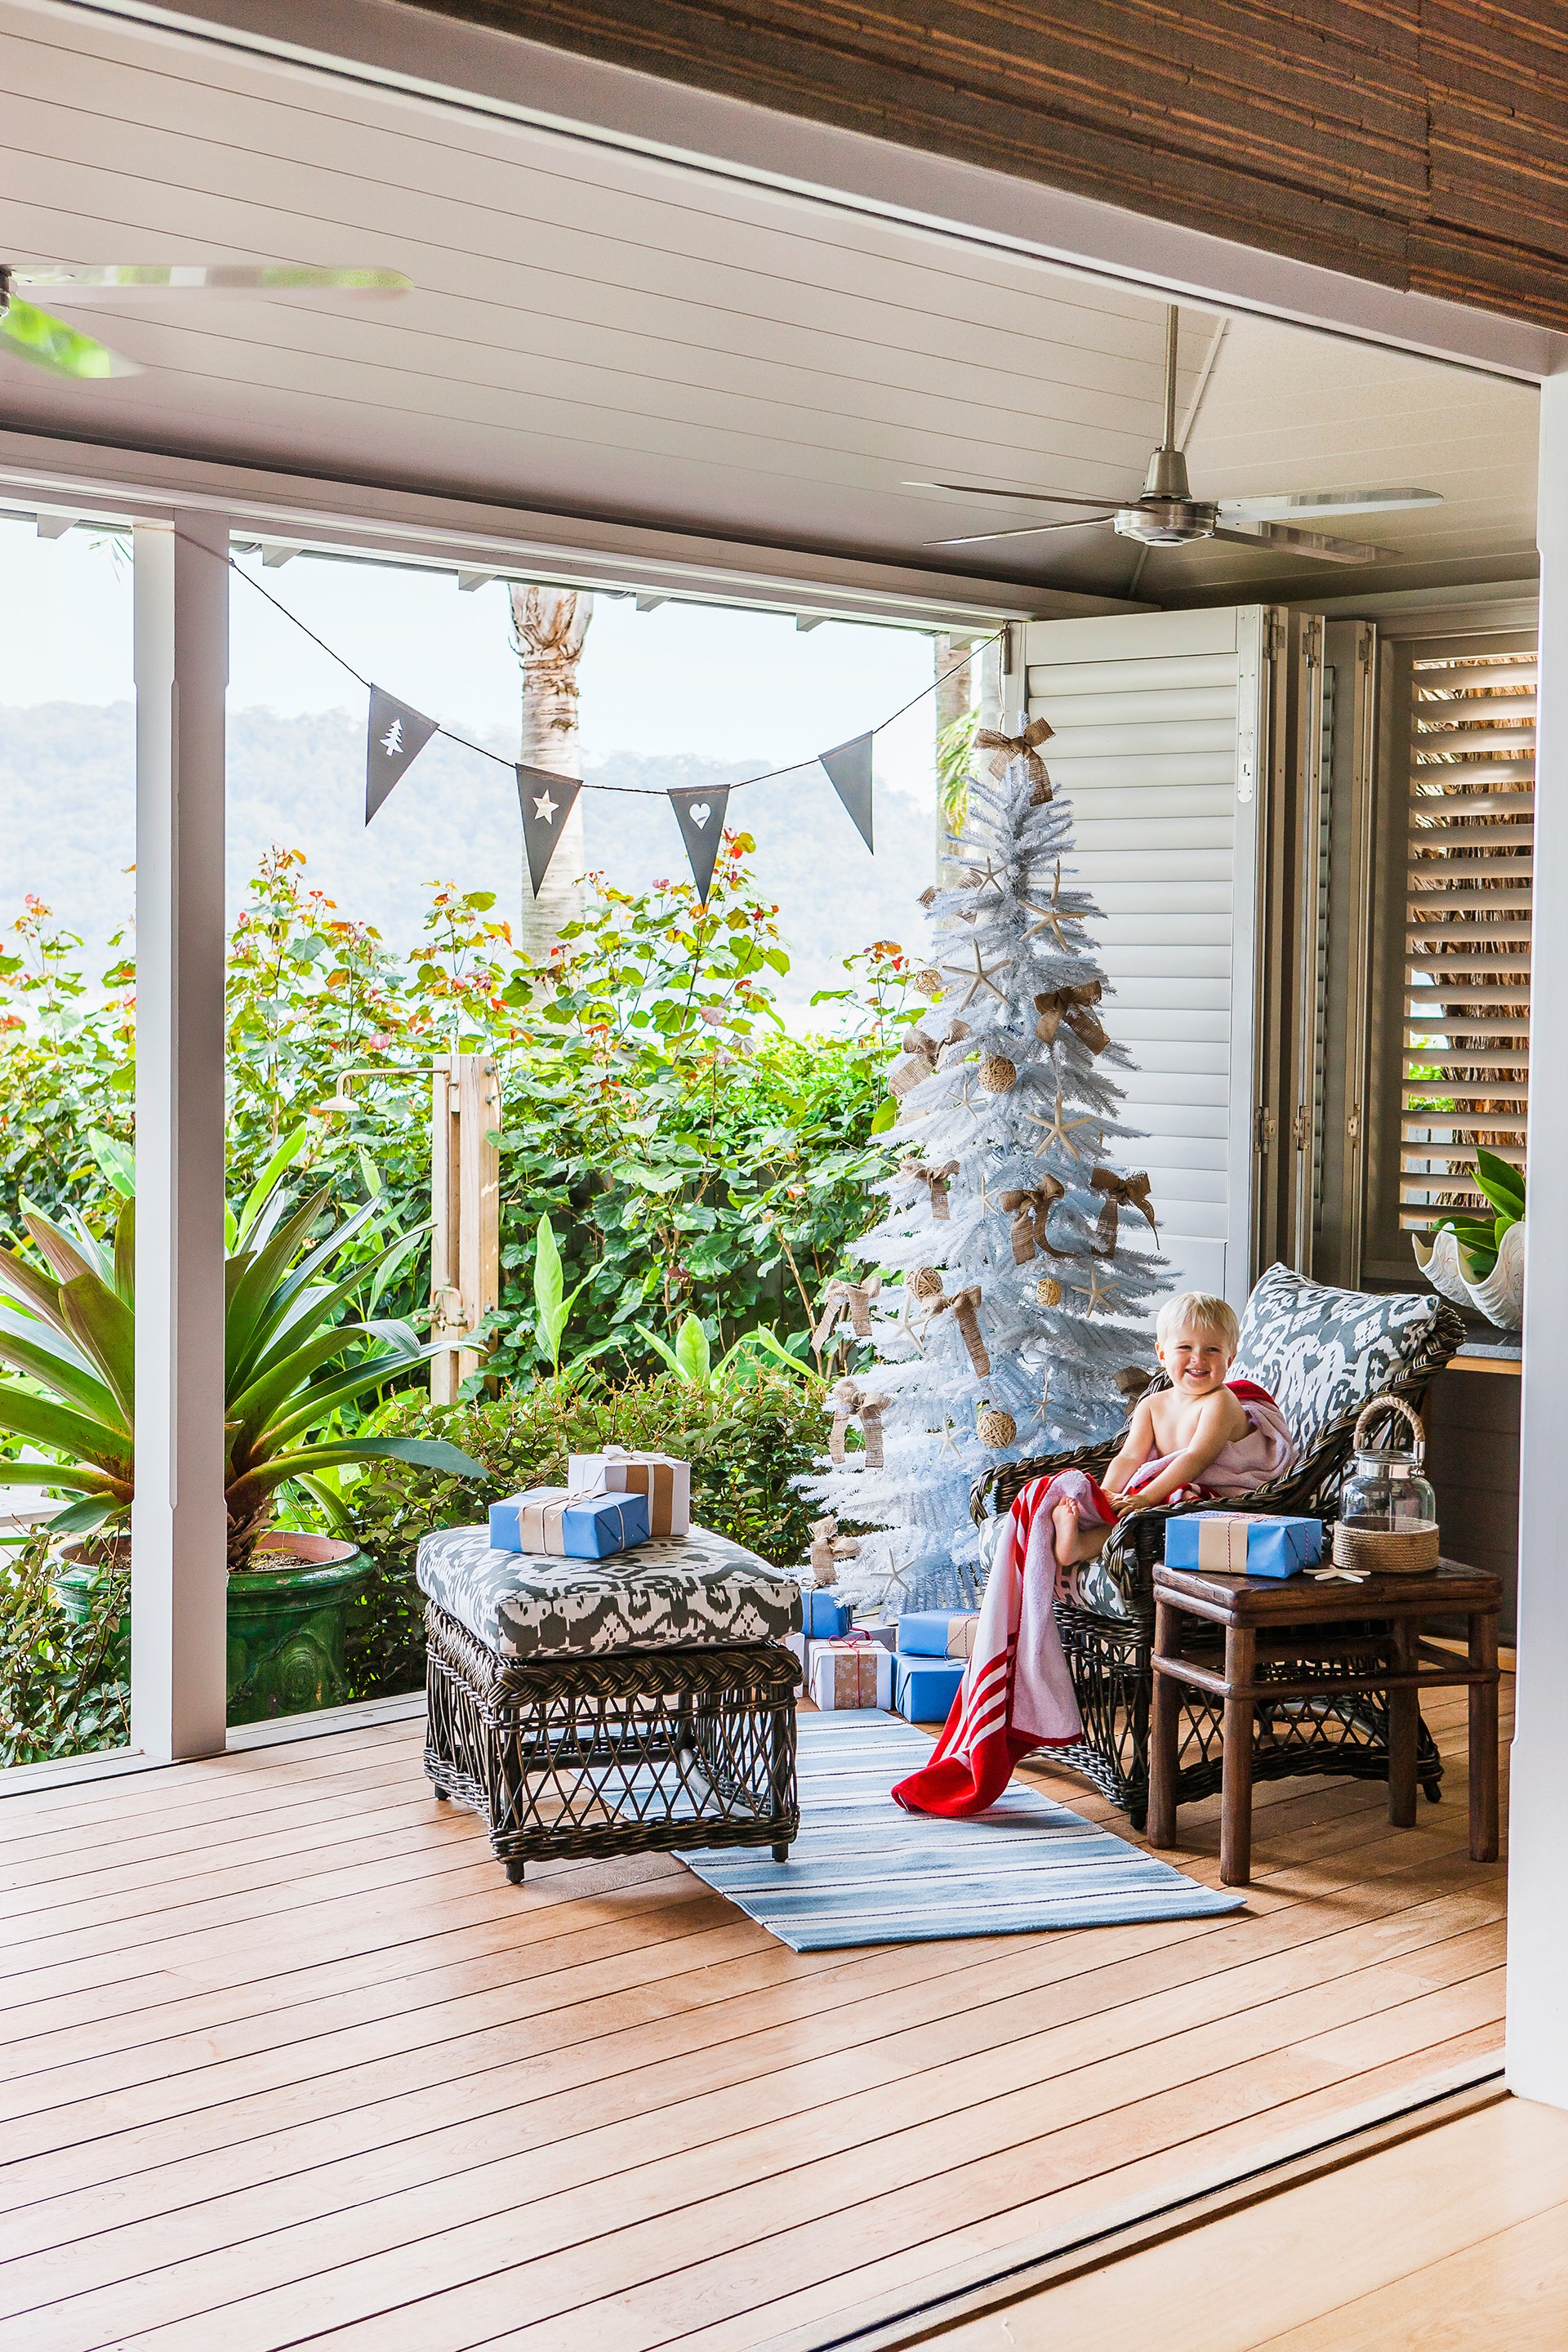 """Rustic decorations are in keeping with the relaxed holiday vibe of this [stunning waterfront home](http://www.homestolove.com.au/holiday-home-made-for-relaxing-family-time-3964